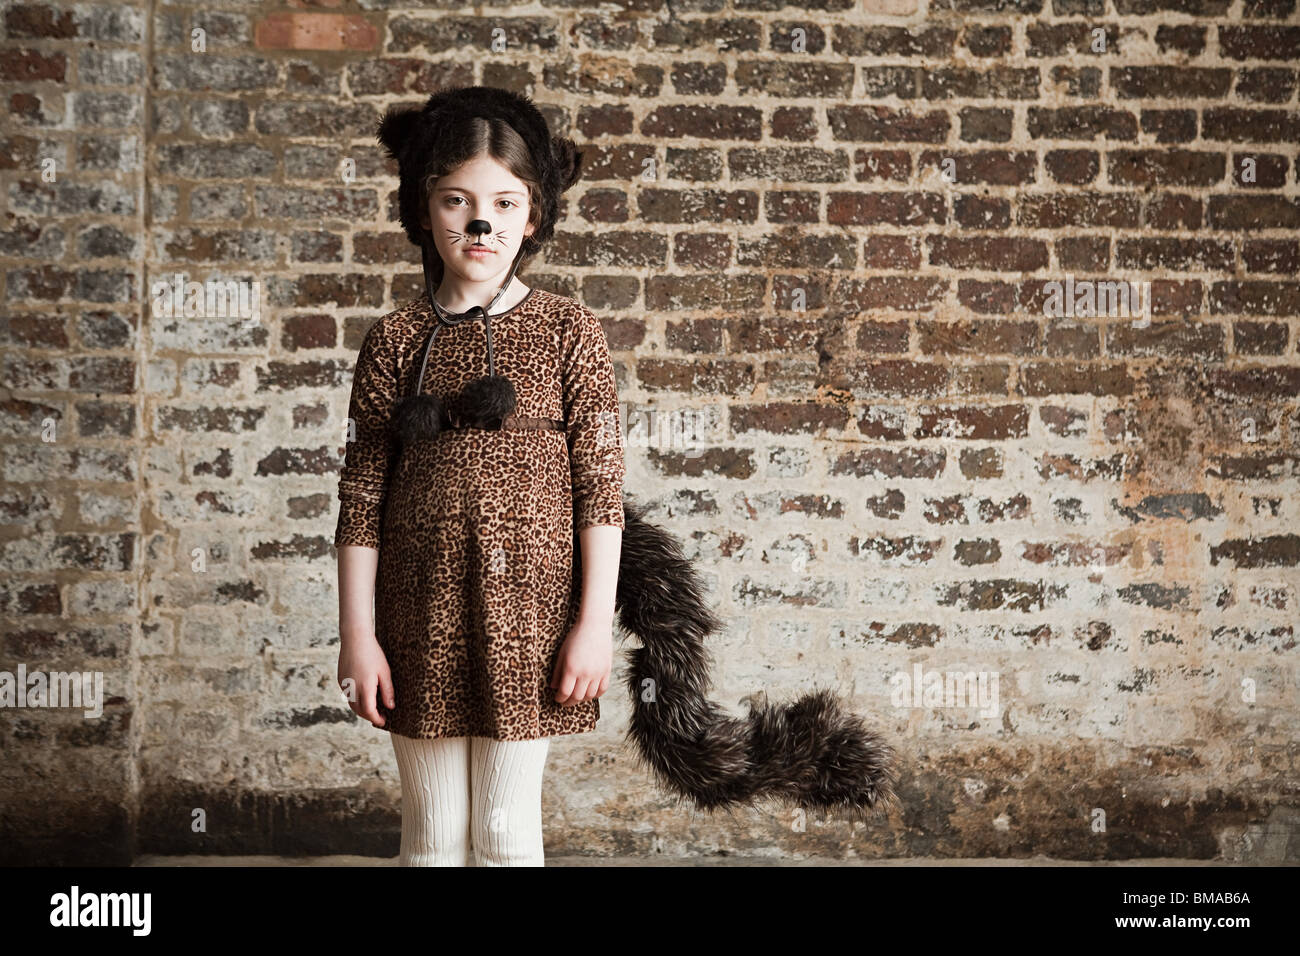 Young girl dressed up as cat - Stock Image